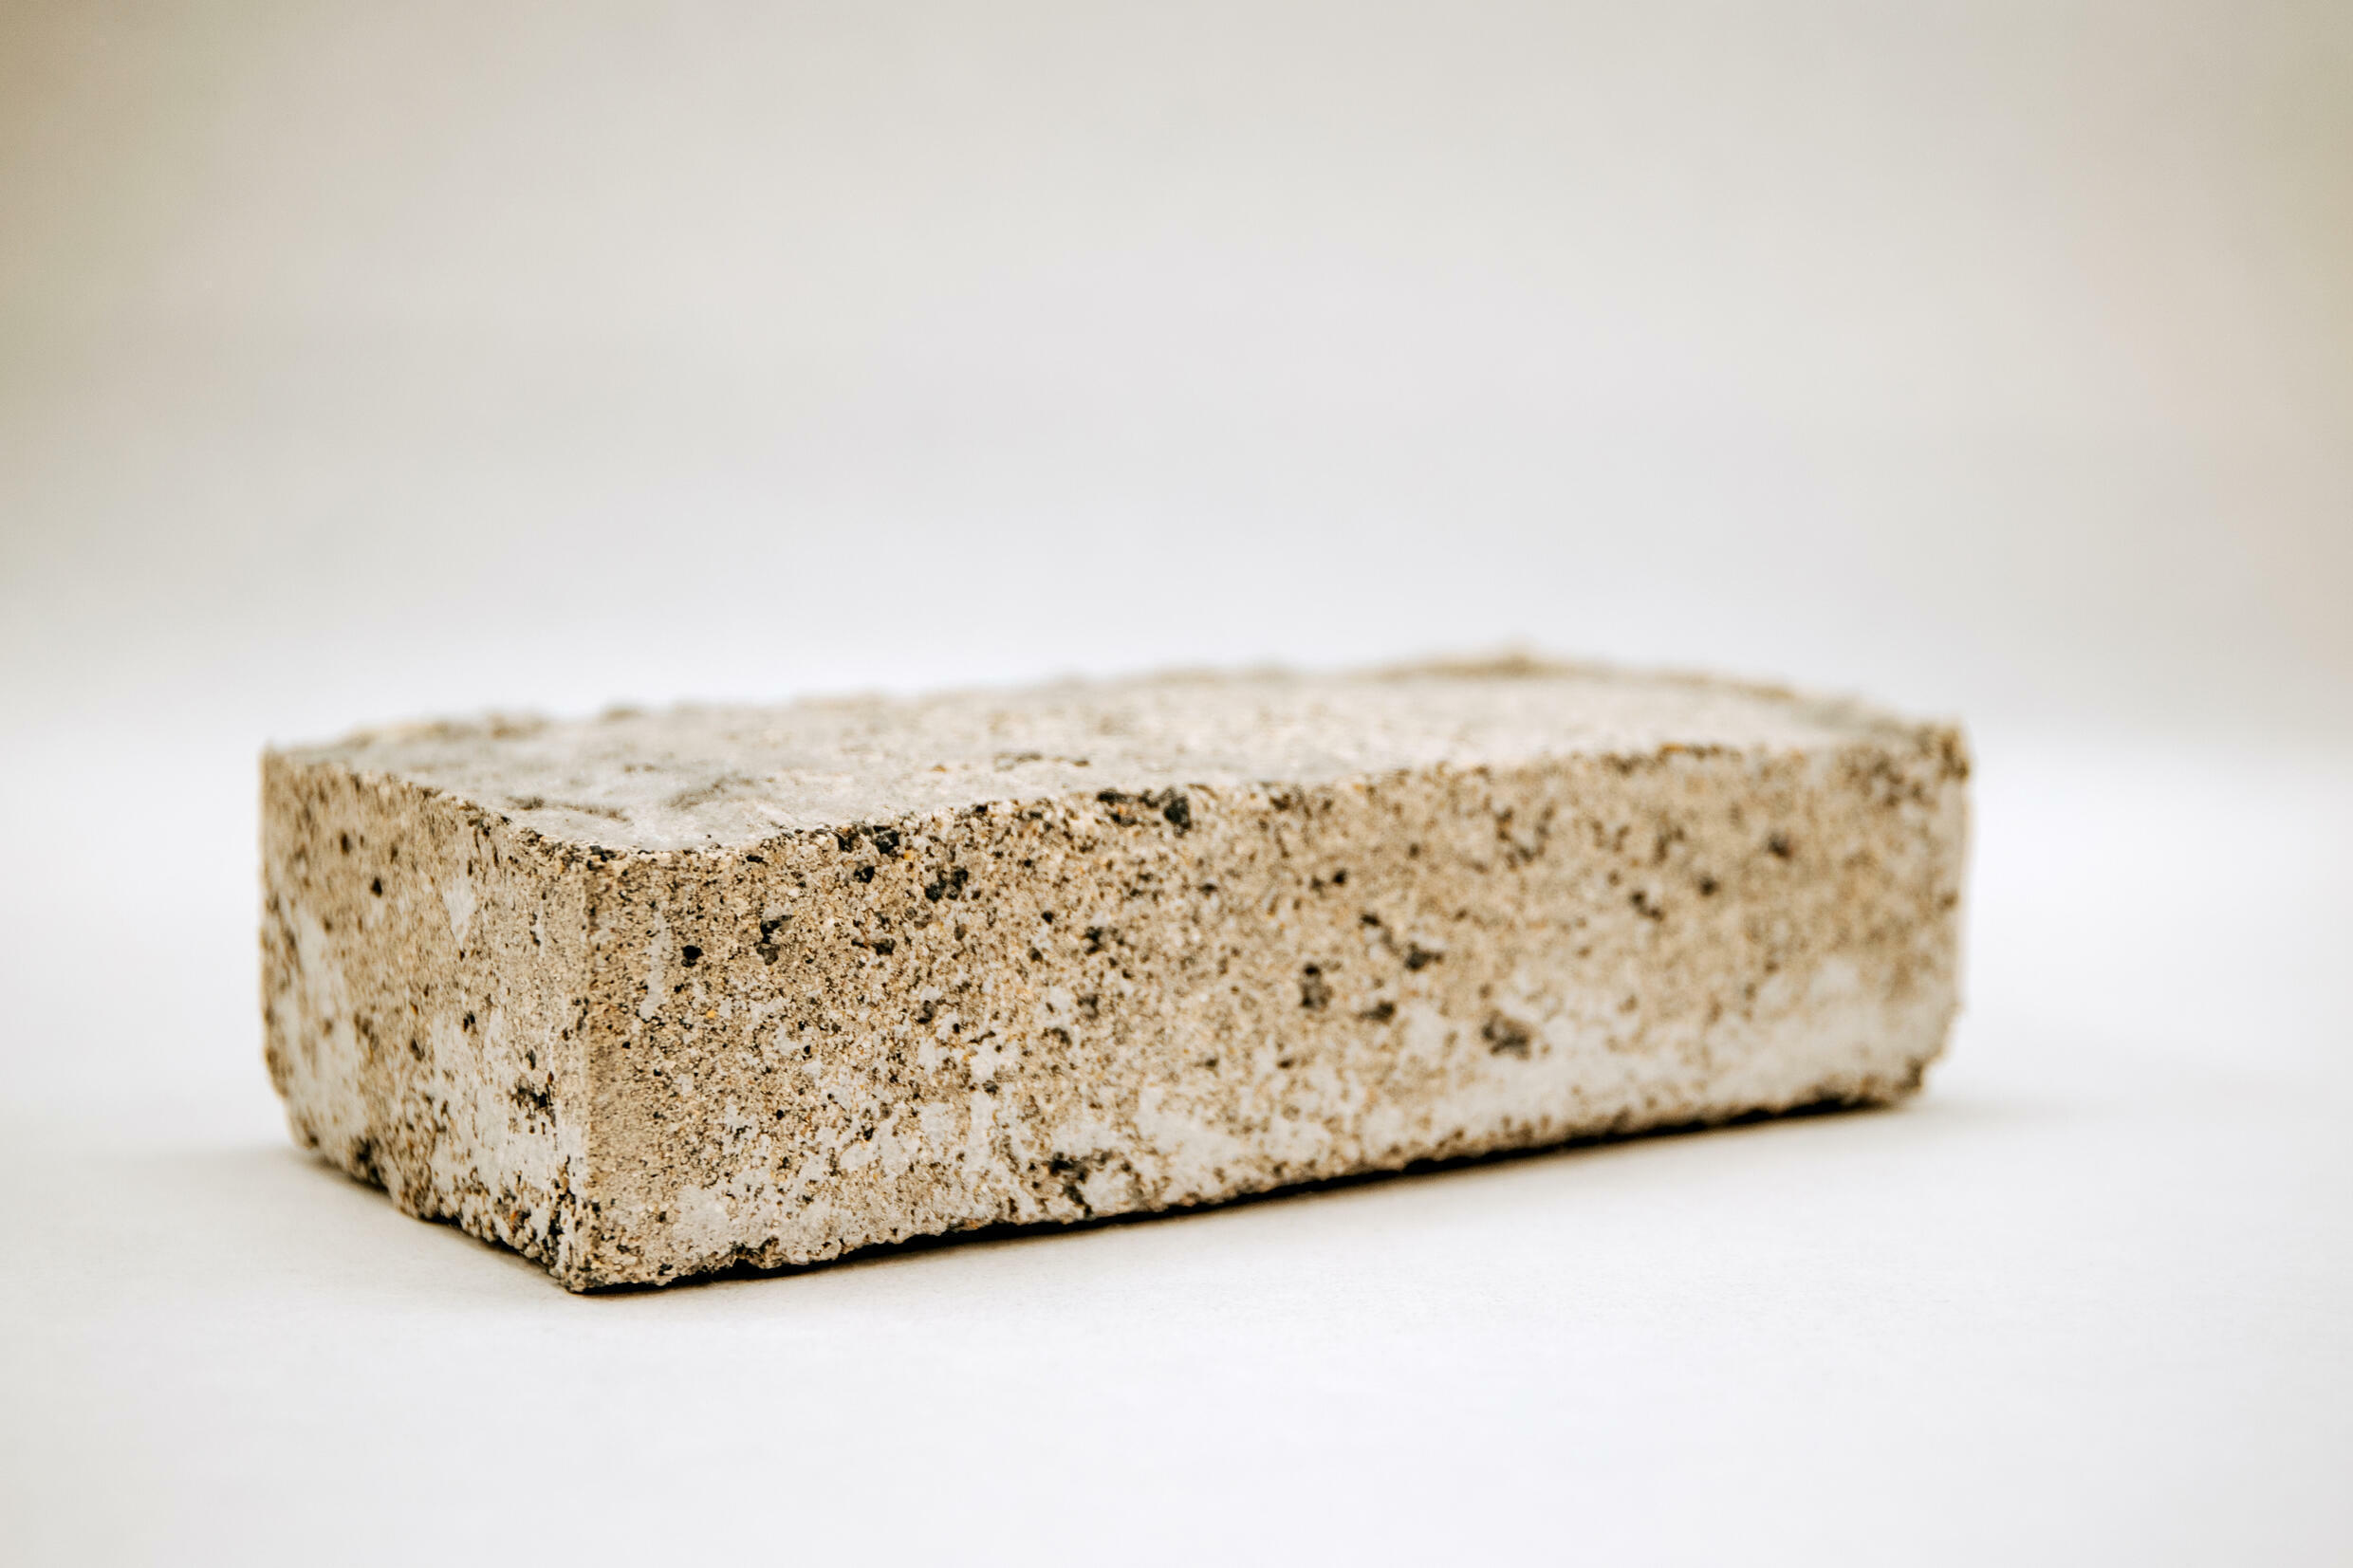 The bio-brick has been perfected to be stronger and use less energy to produce than conventional bricks.